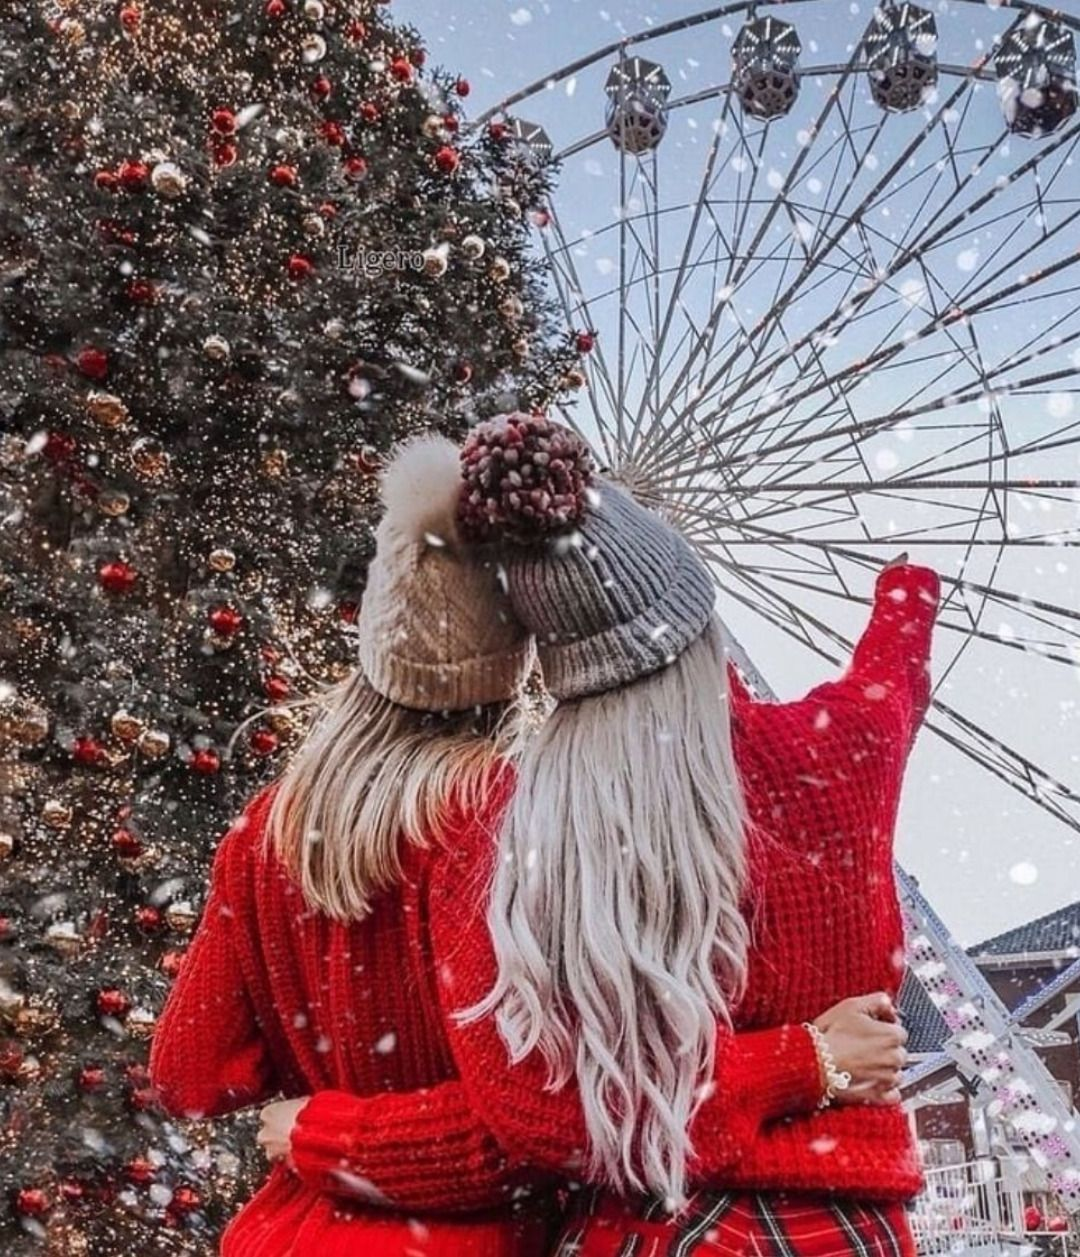 Beautiful Stylish Girl Whatsapp Dp Profile Images Wallpaper Pictures Christmas Pictures Friends Christmas Pictures Family Outdoor Christmas Pictures